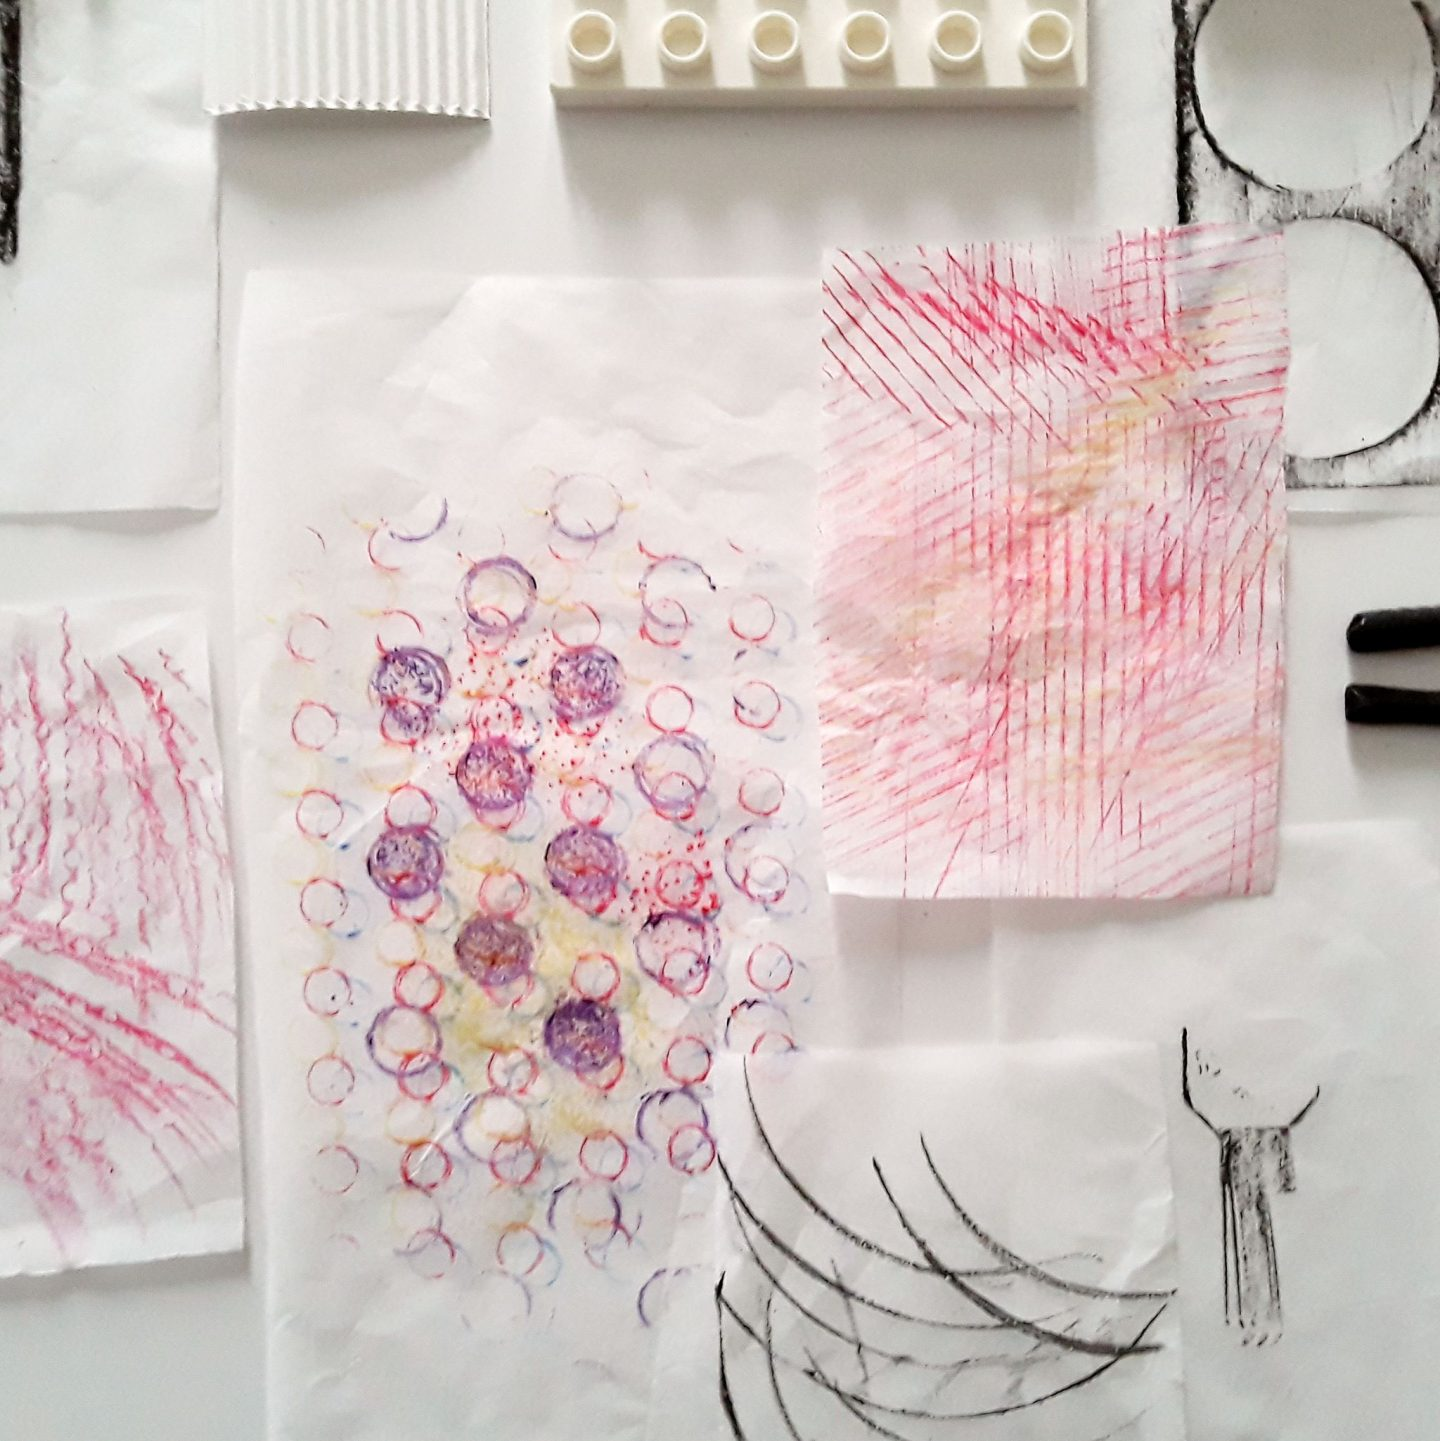 Kids art projects: Make rubbings from surfaces